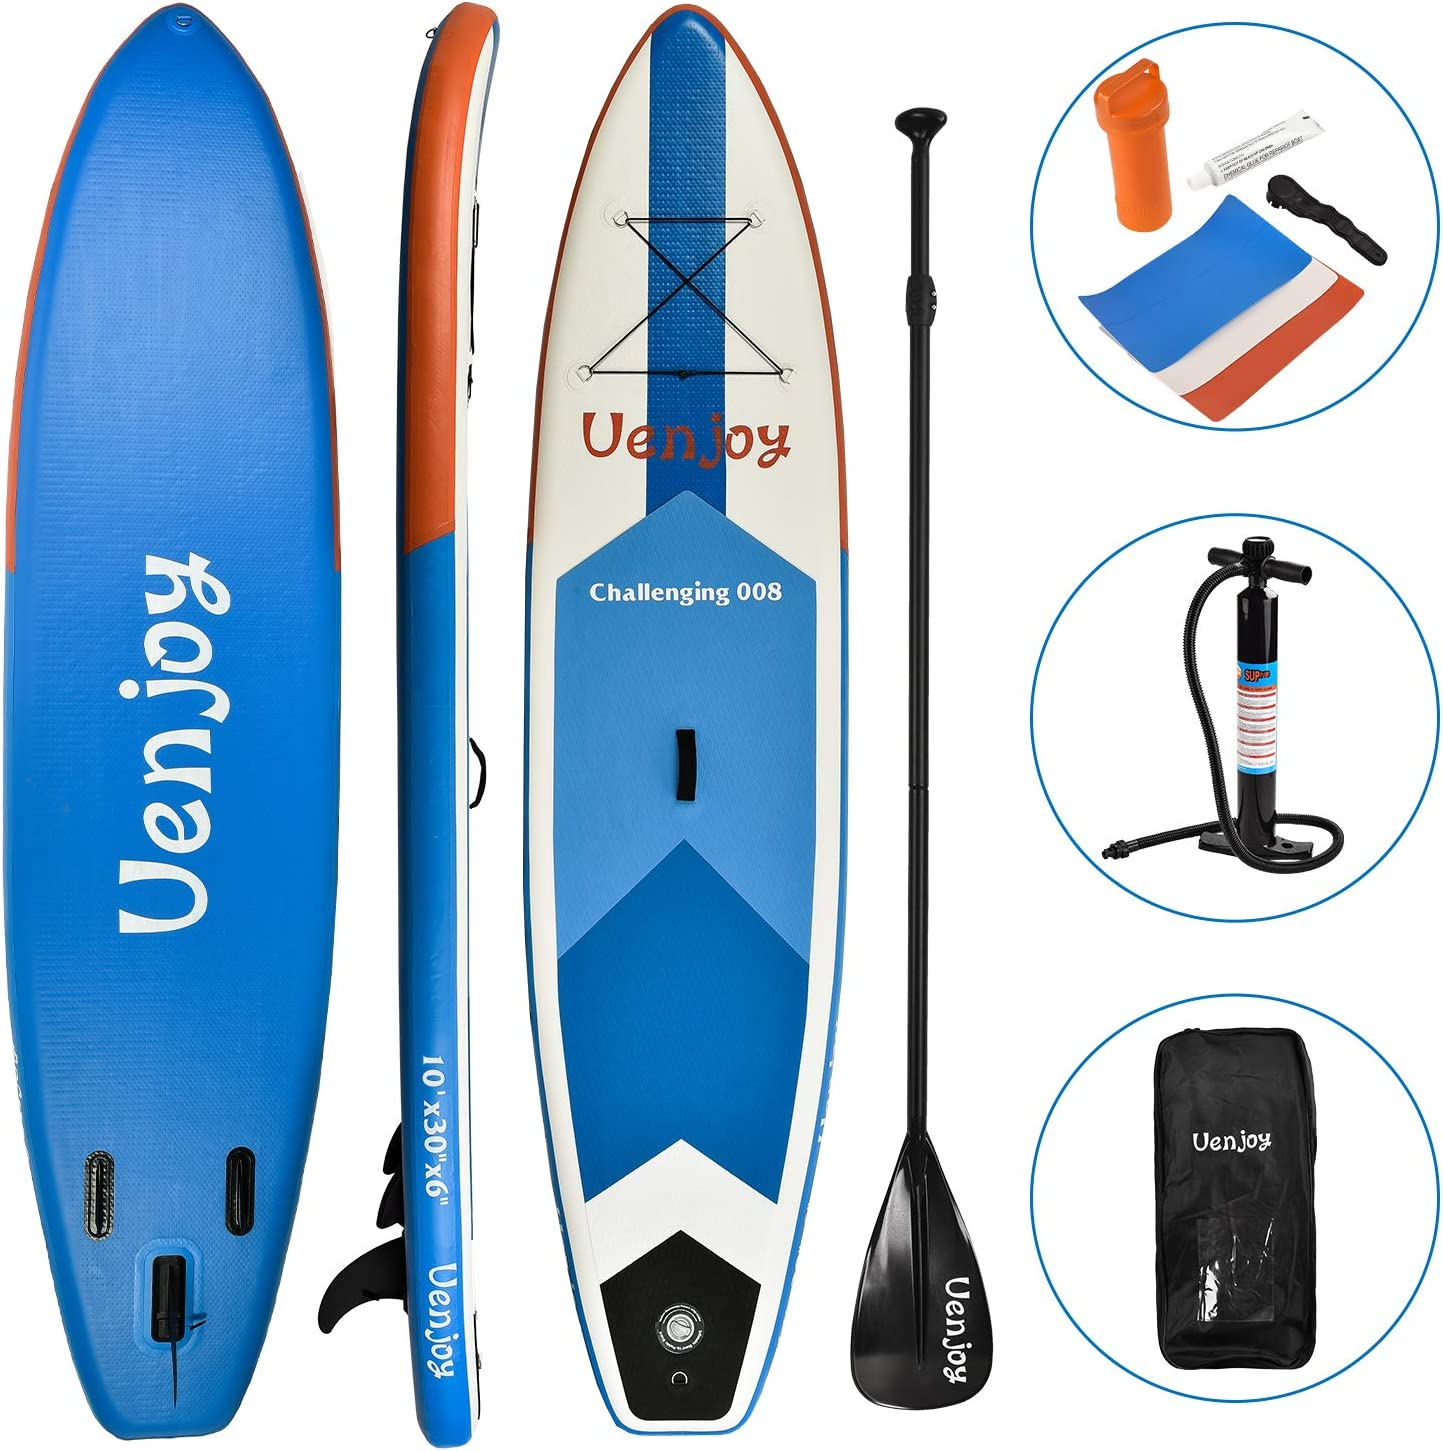 Uenjoy Inflatable Sup 1130